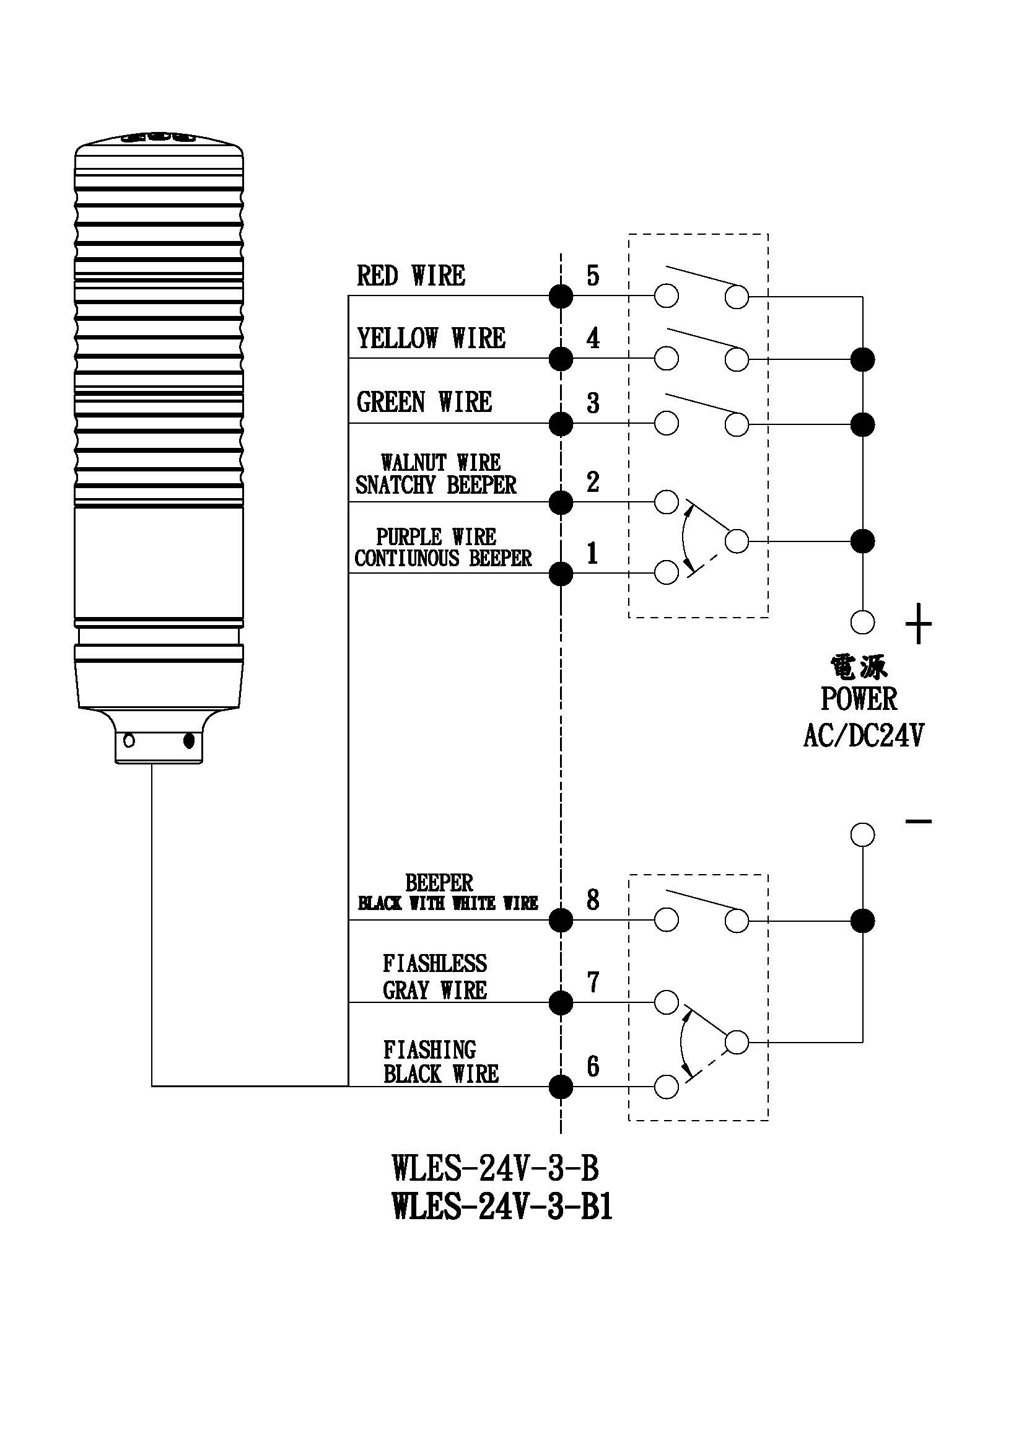 Jet Shaper Wiring Diagram Jd L120 Wiring-diagram Dodge Ram